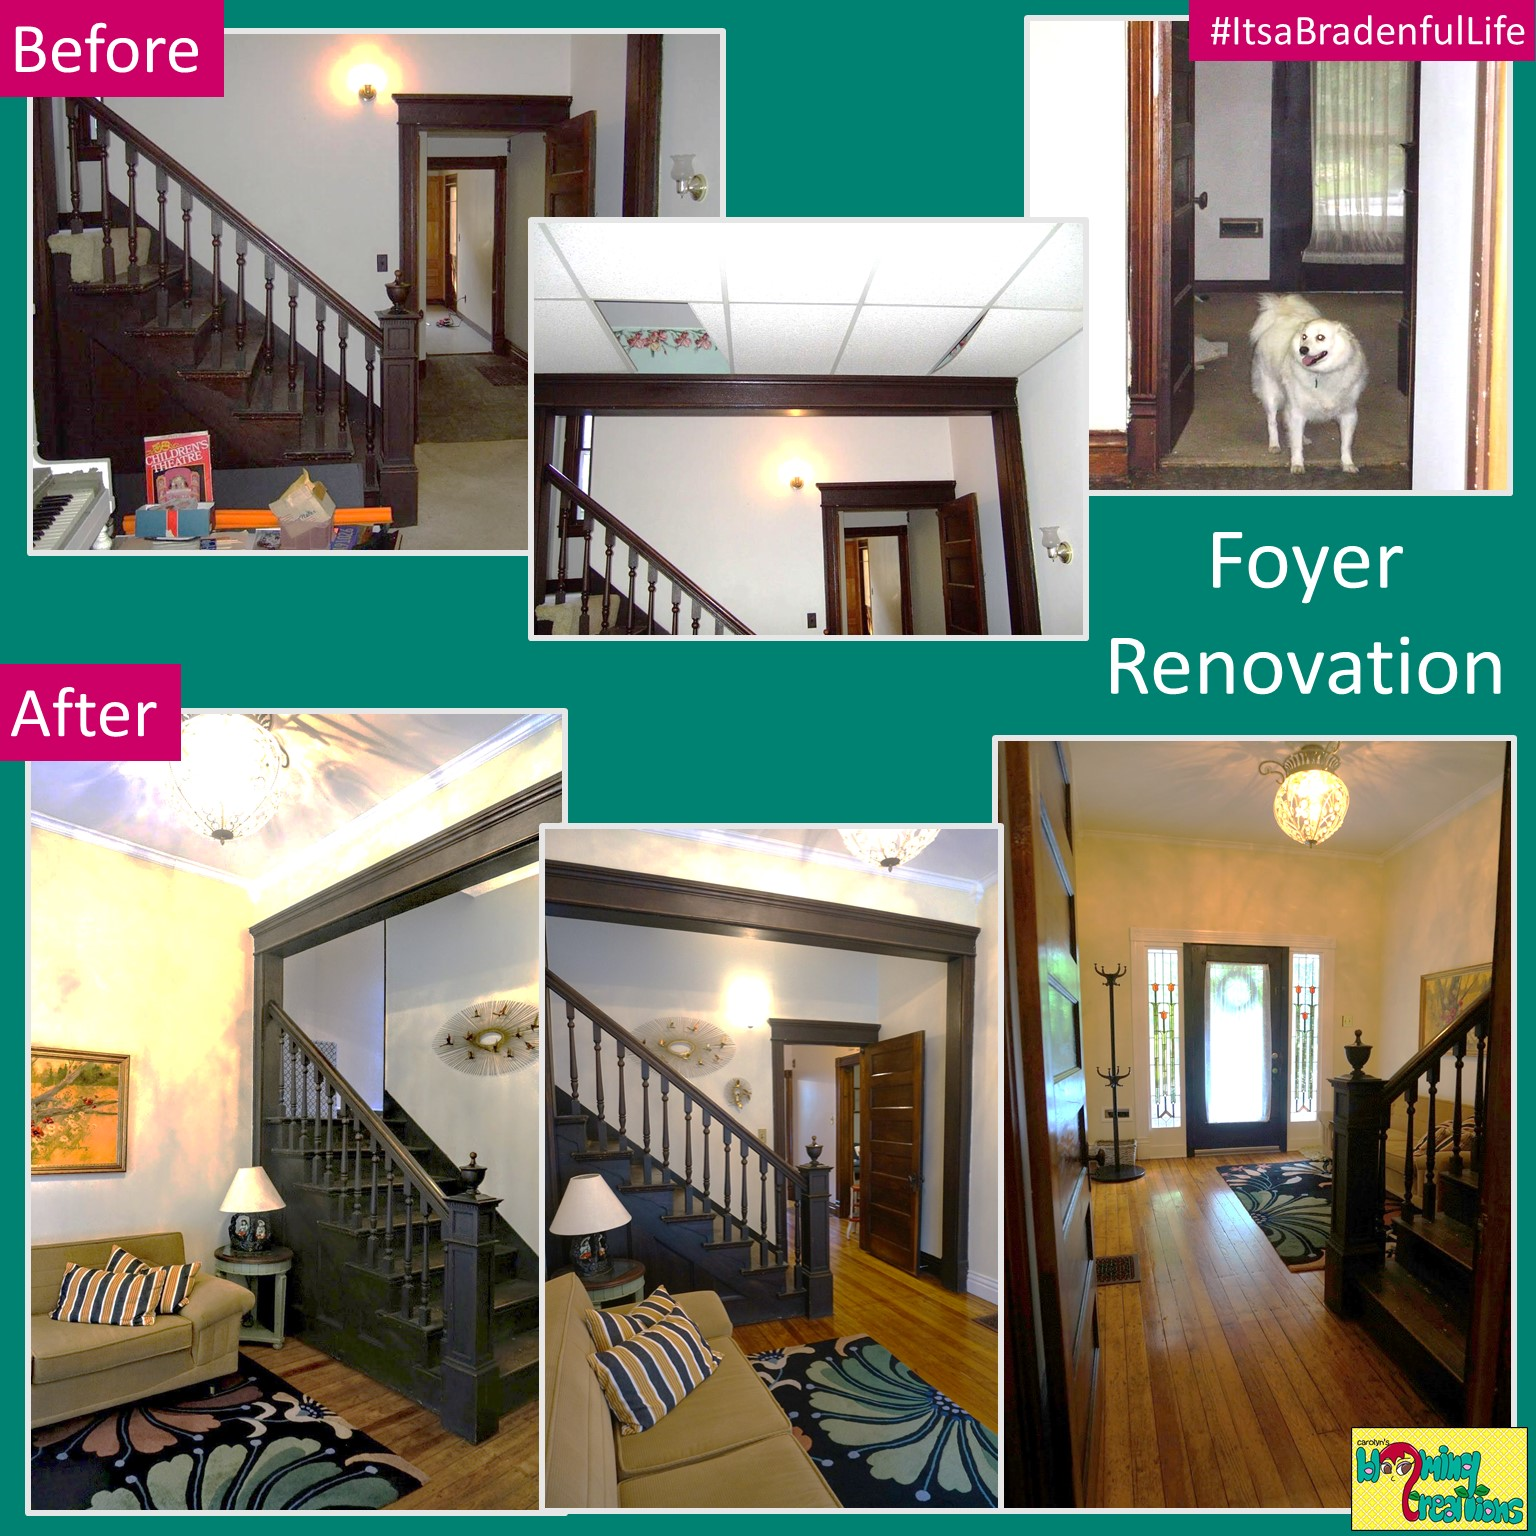 Foyer Before and After Carolyn Braden Itsabradenfullife.jpg